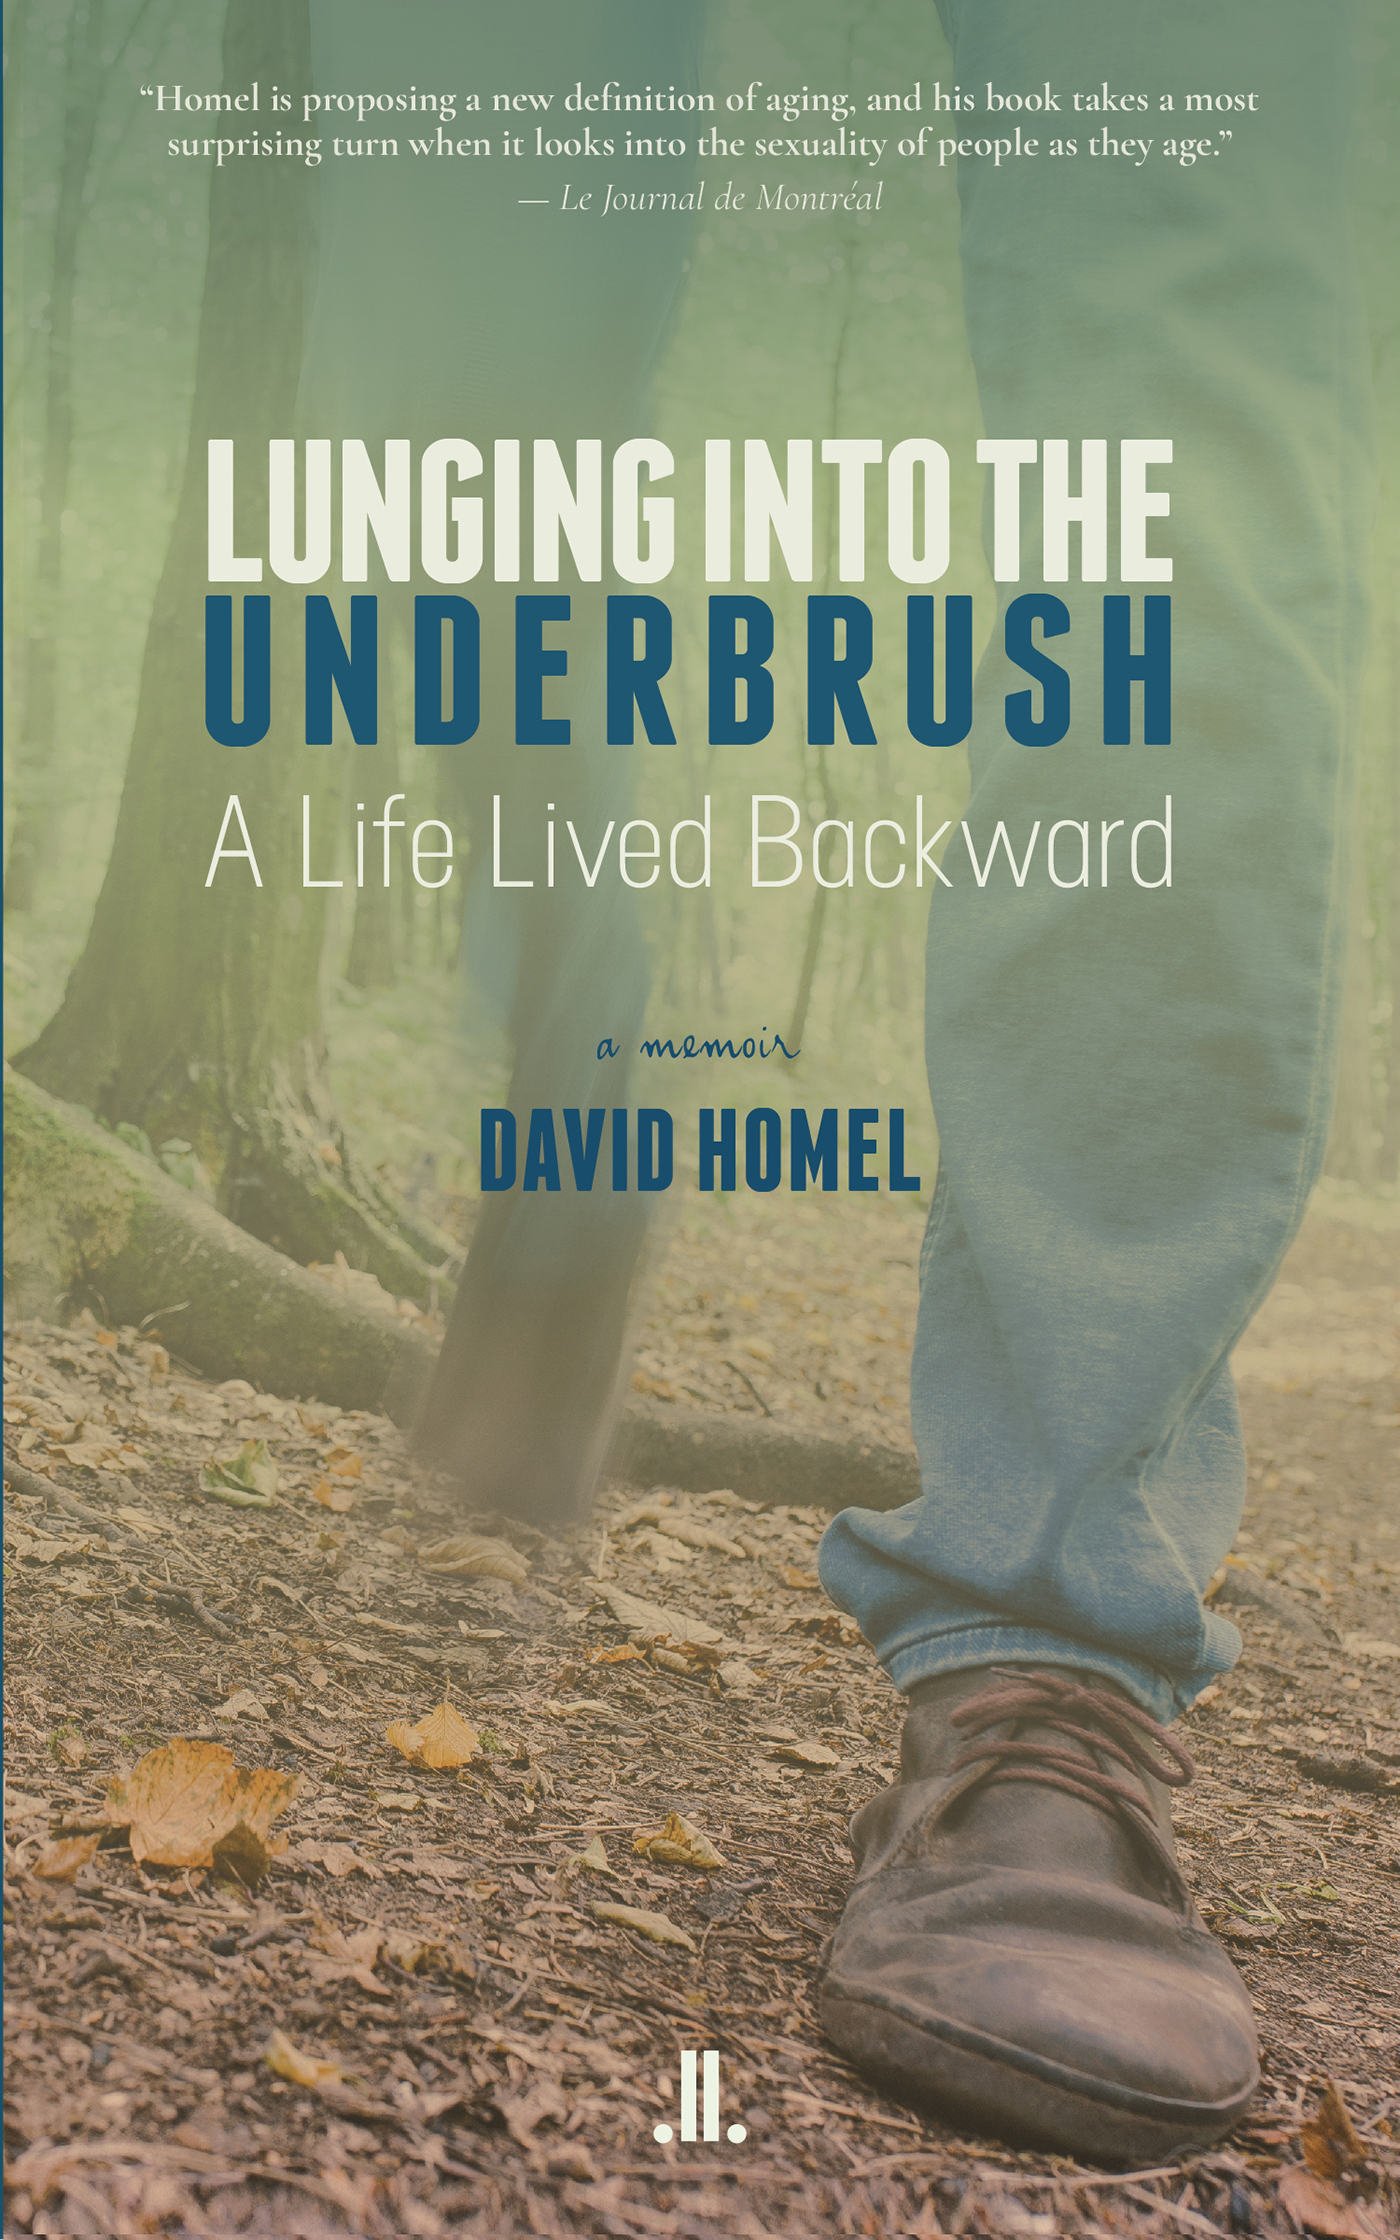 Lunging into the Underbrush: A Life Lived Backward